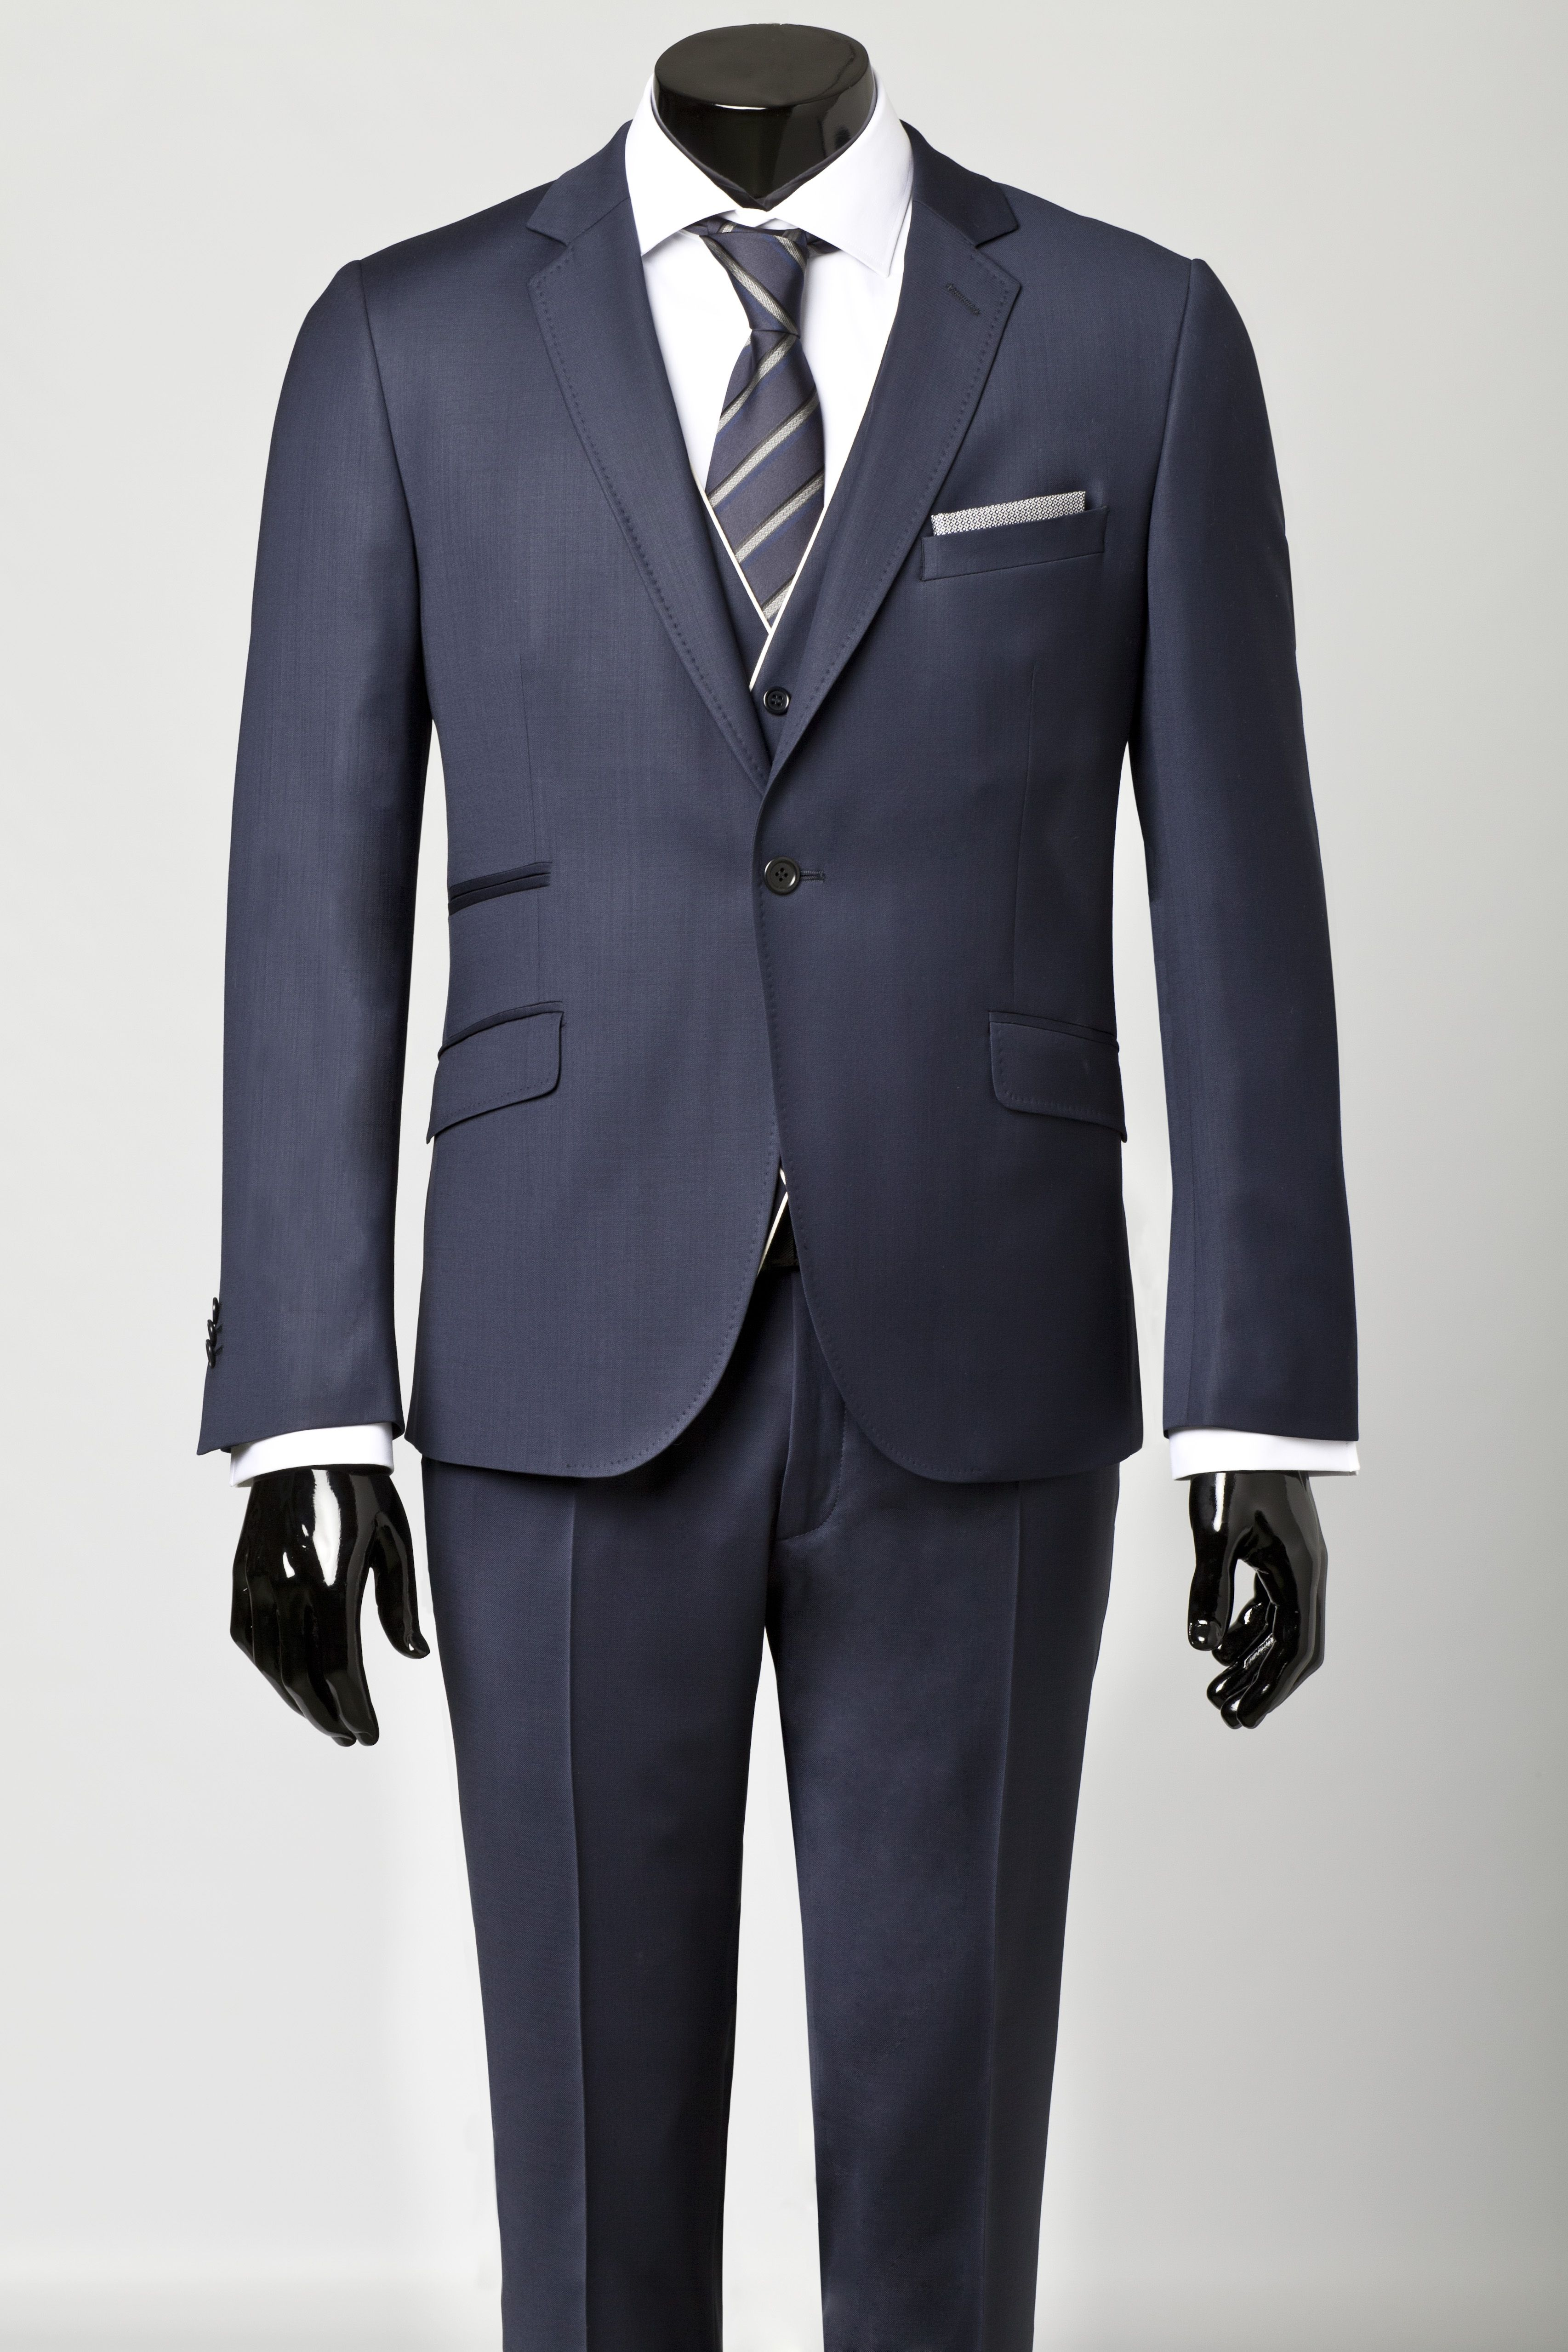 Navy blue, one-buttoned suit with waistcoat, white, english-collared ...